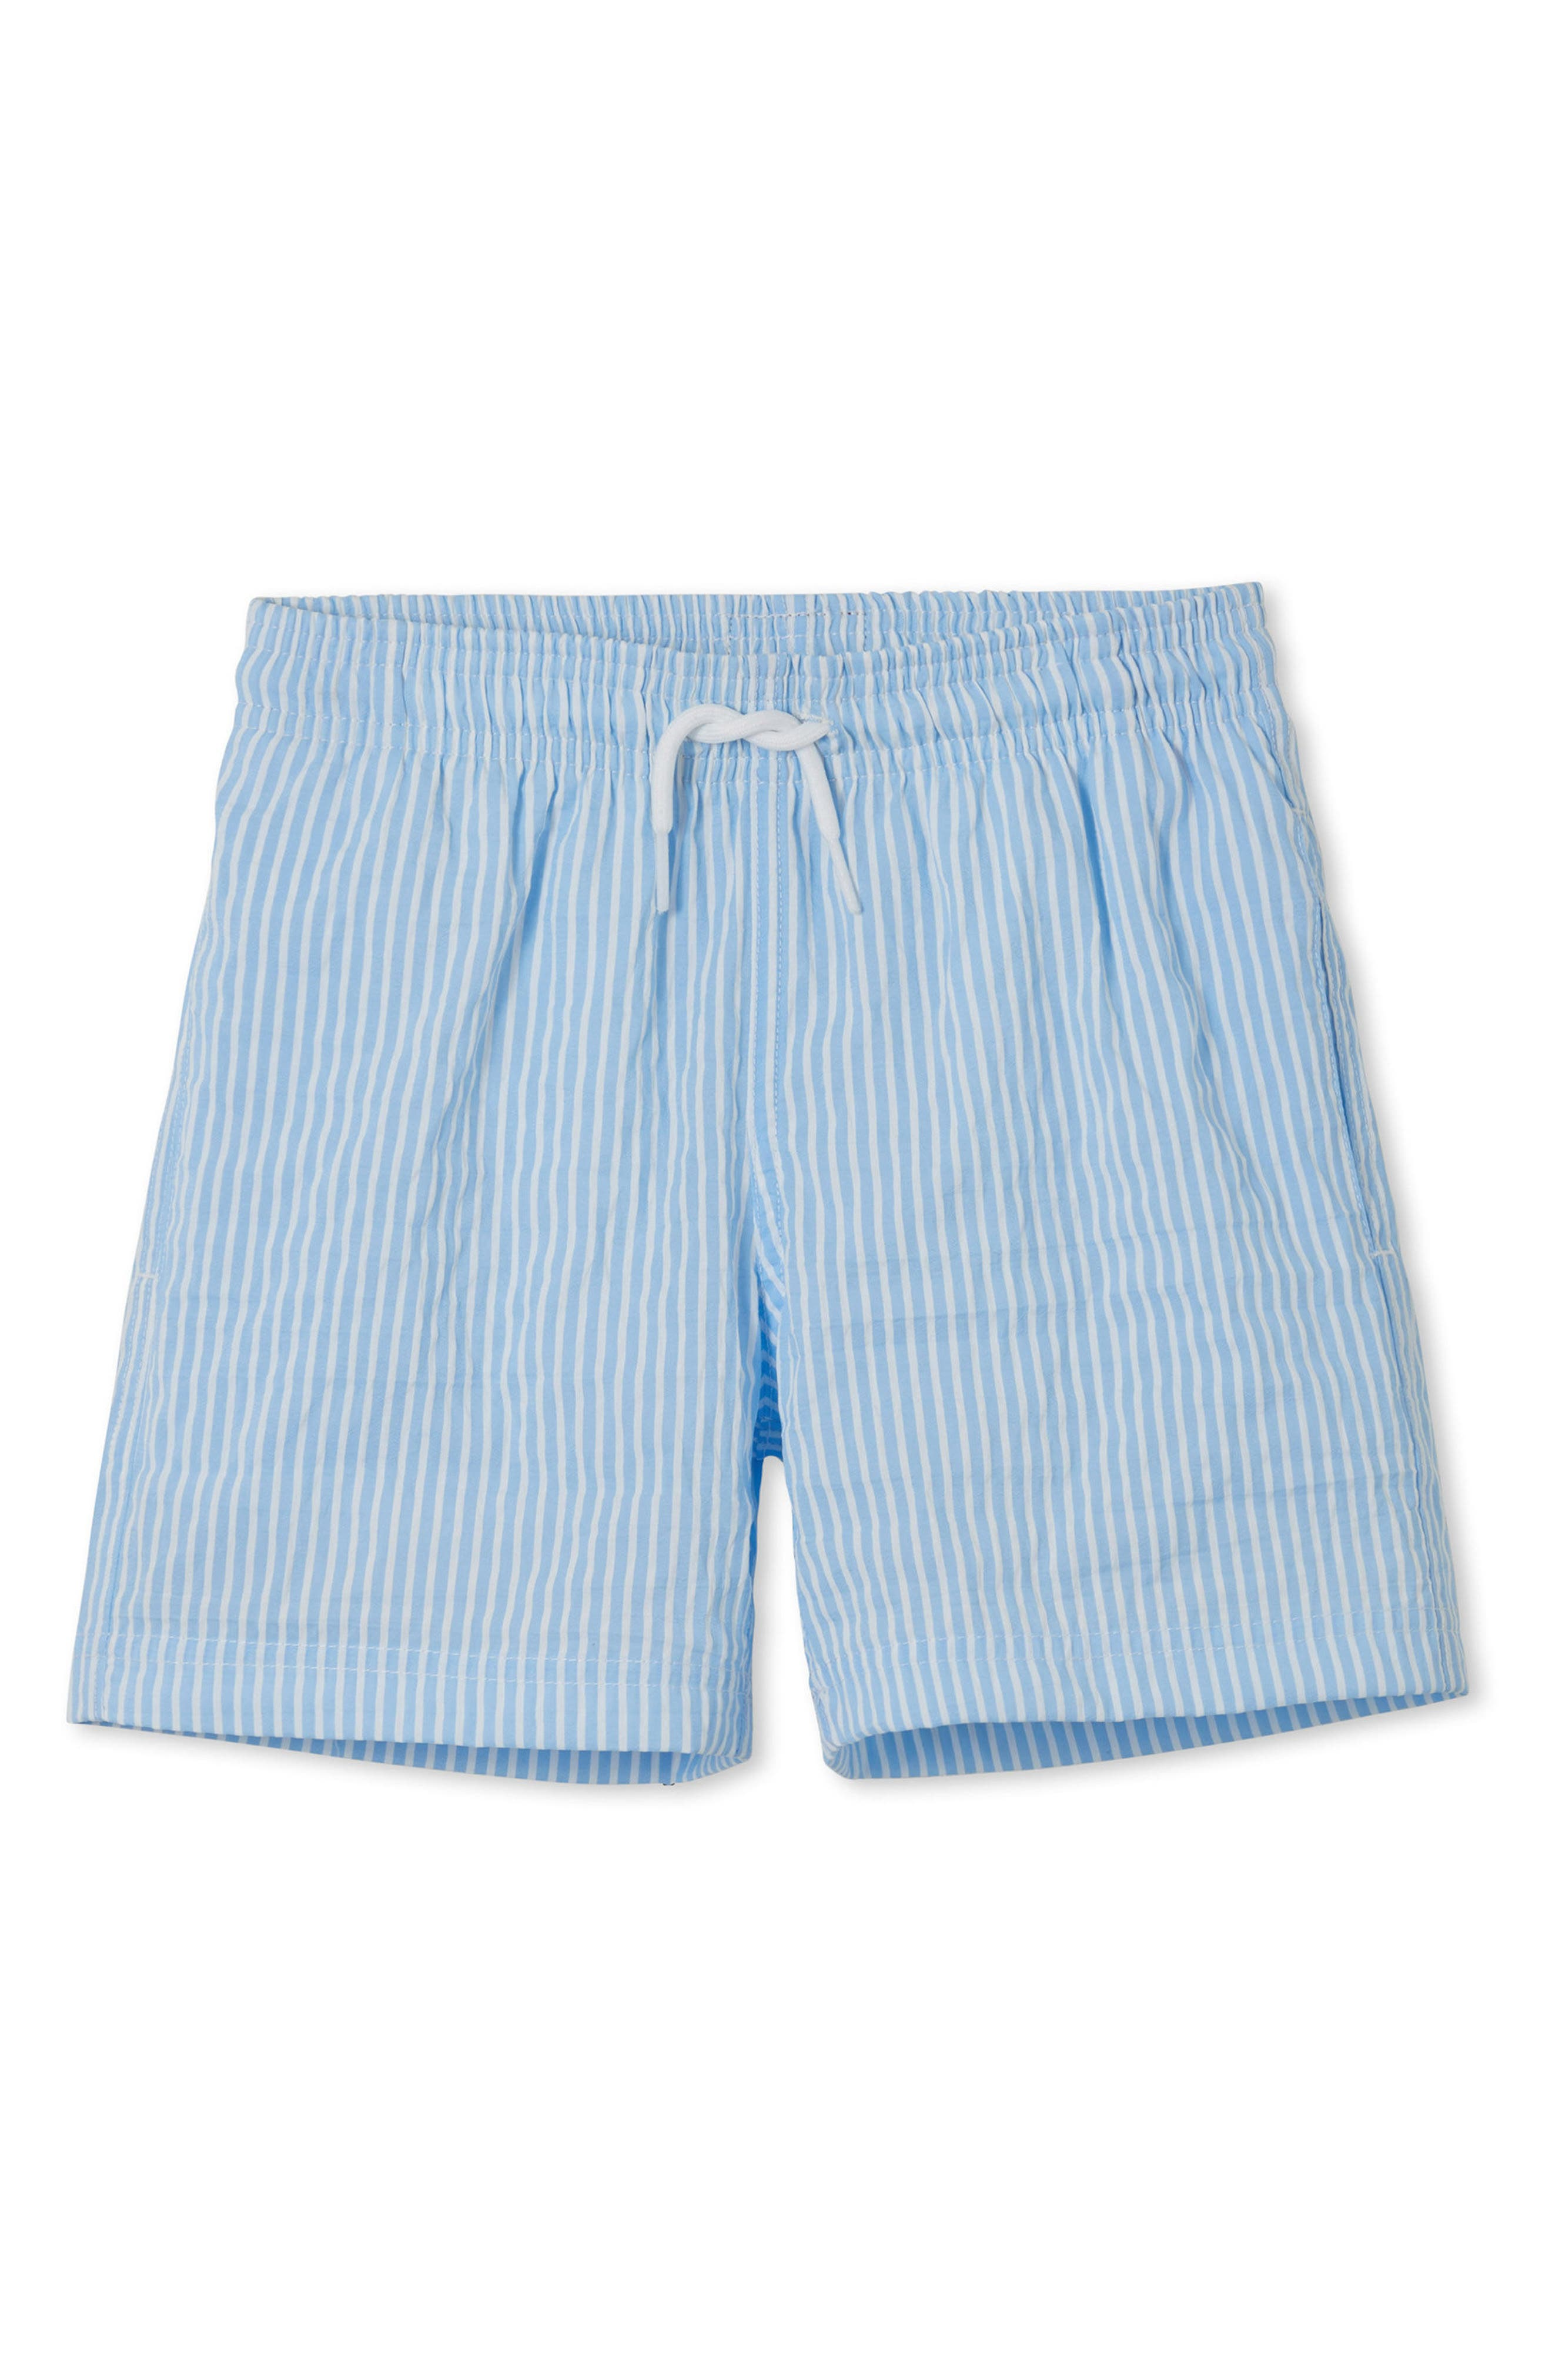 Blue Stripe Swim Trunks,                             Main thumbnail 1, color,                             Blue